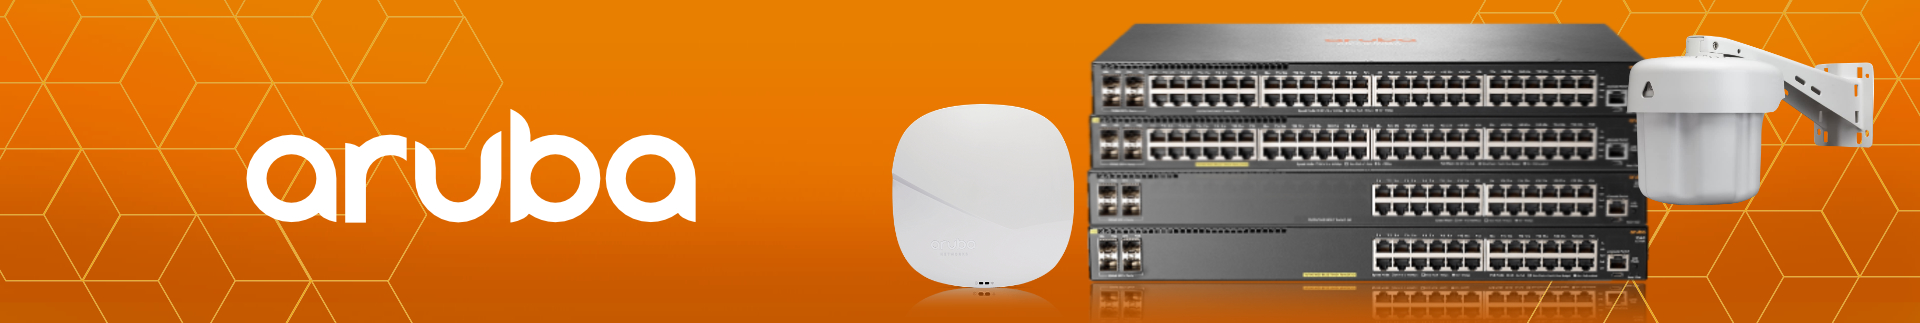 switches access point router aruba